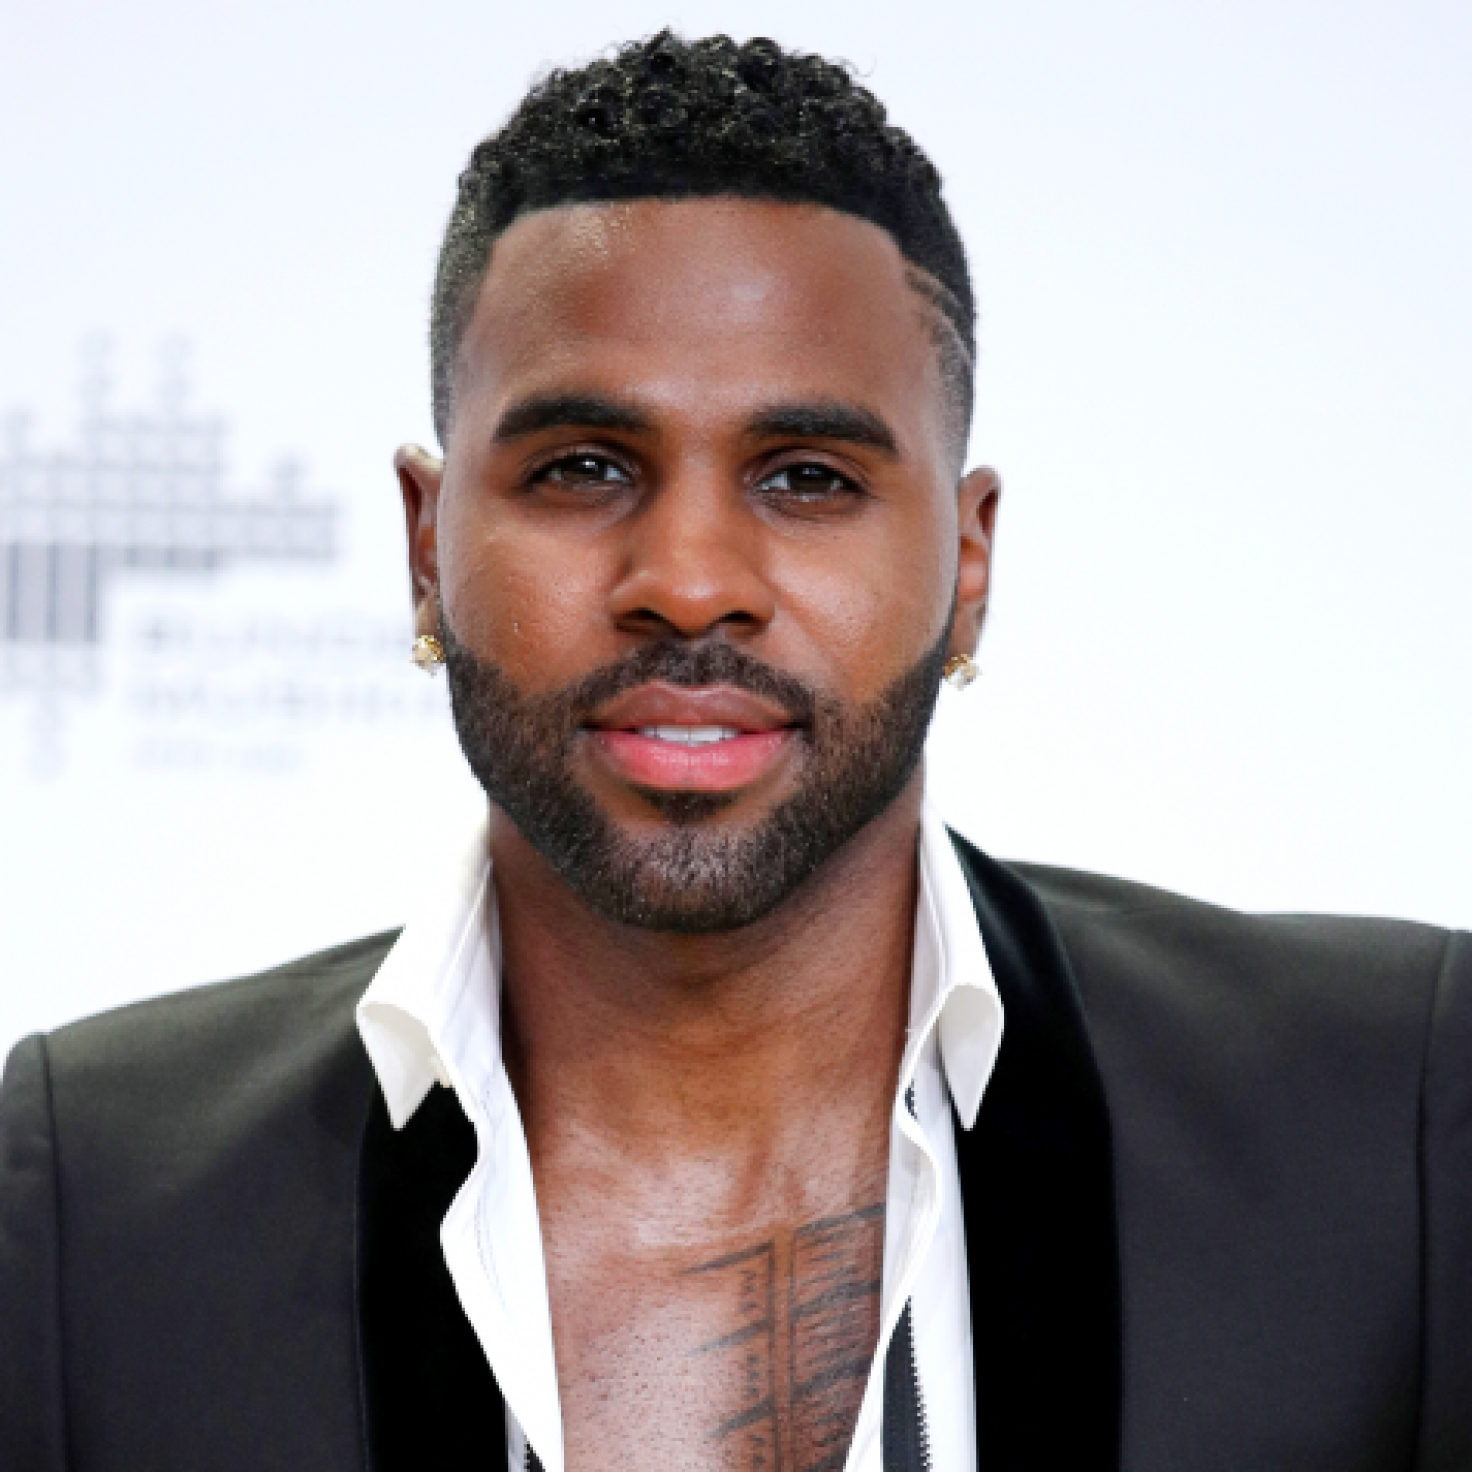 Jason Derulo Shaved Off His Eyebrow And It Was Painful To Watch